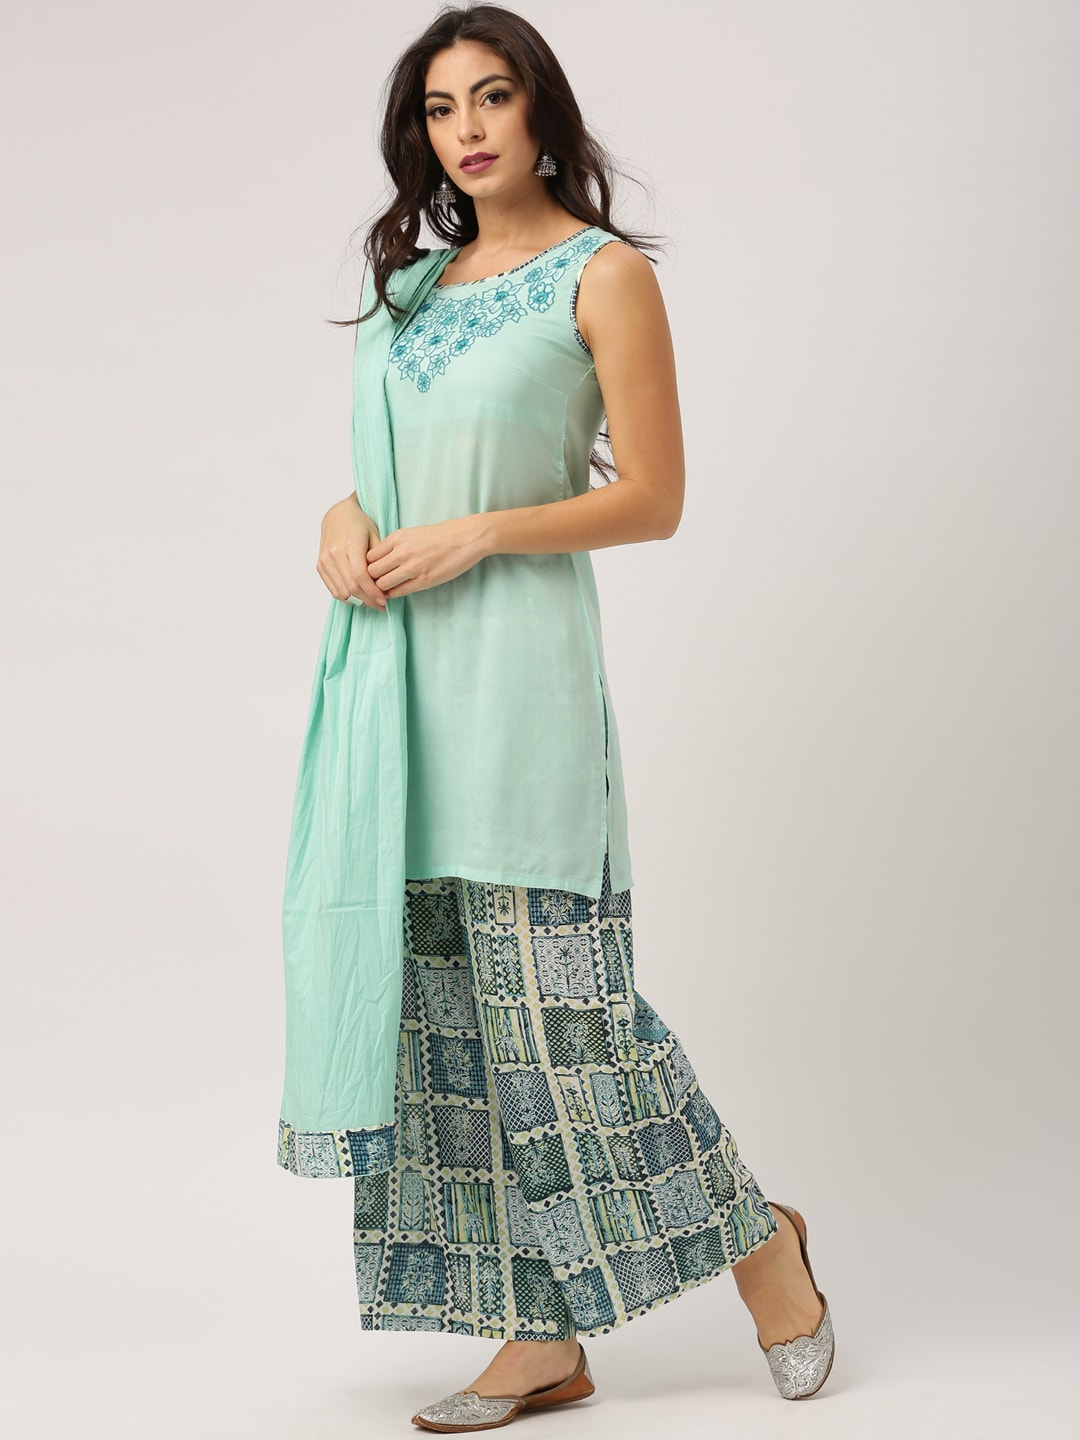 All About You - Exclusive All About You Online Store in India at ...